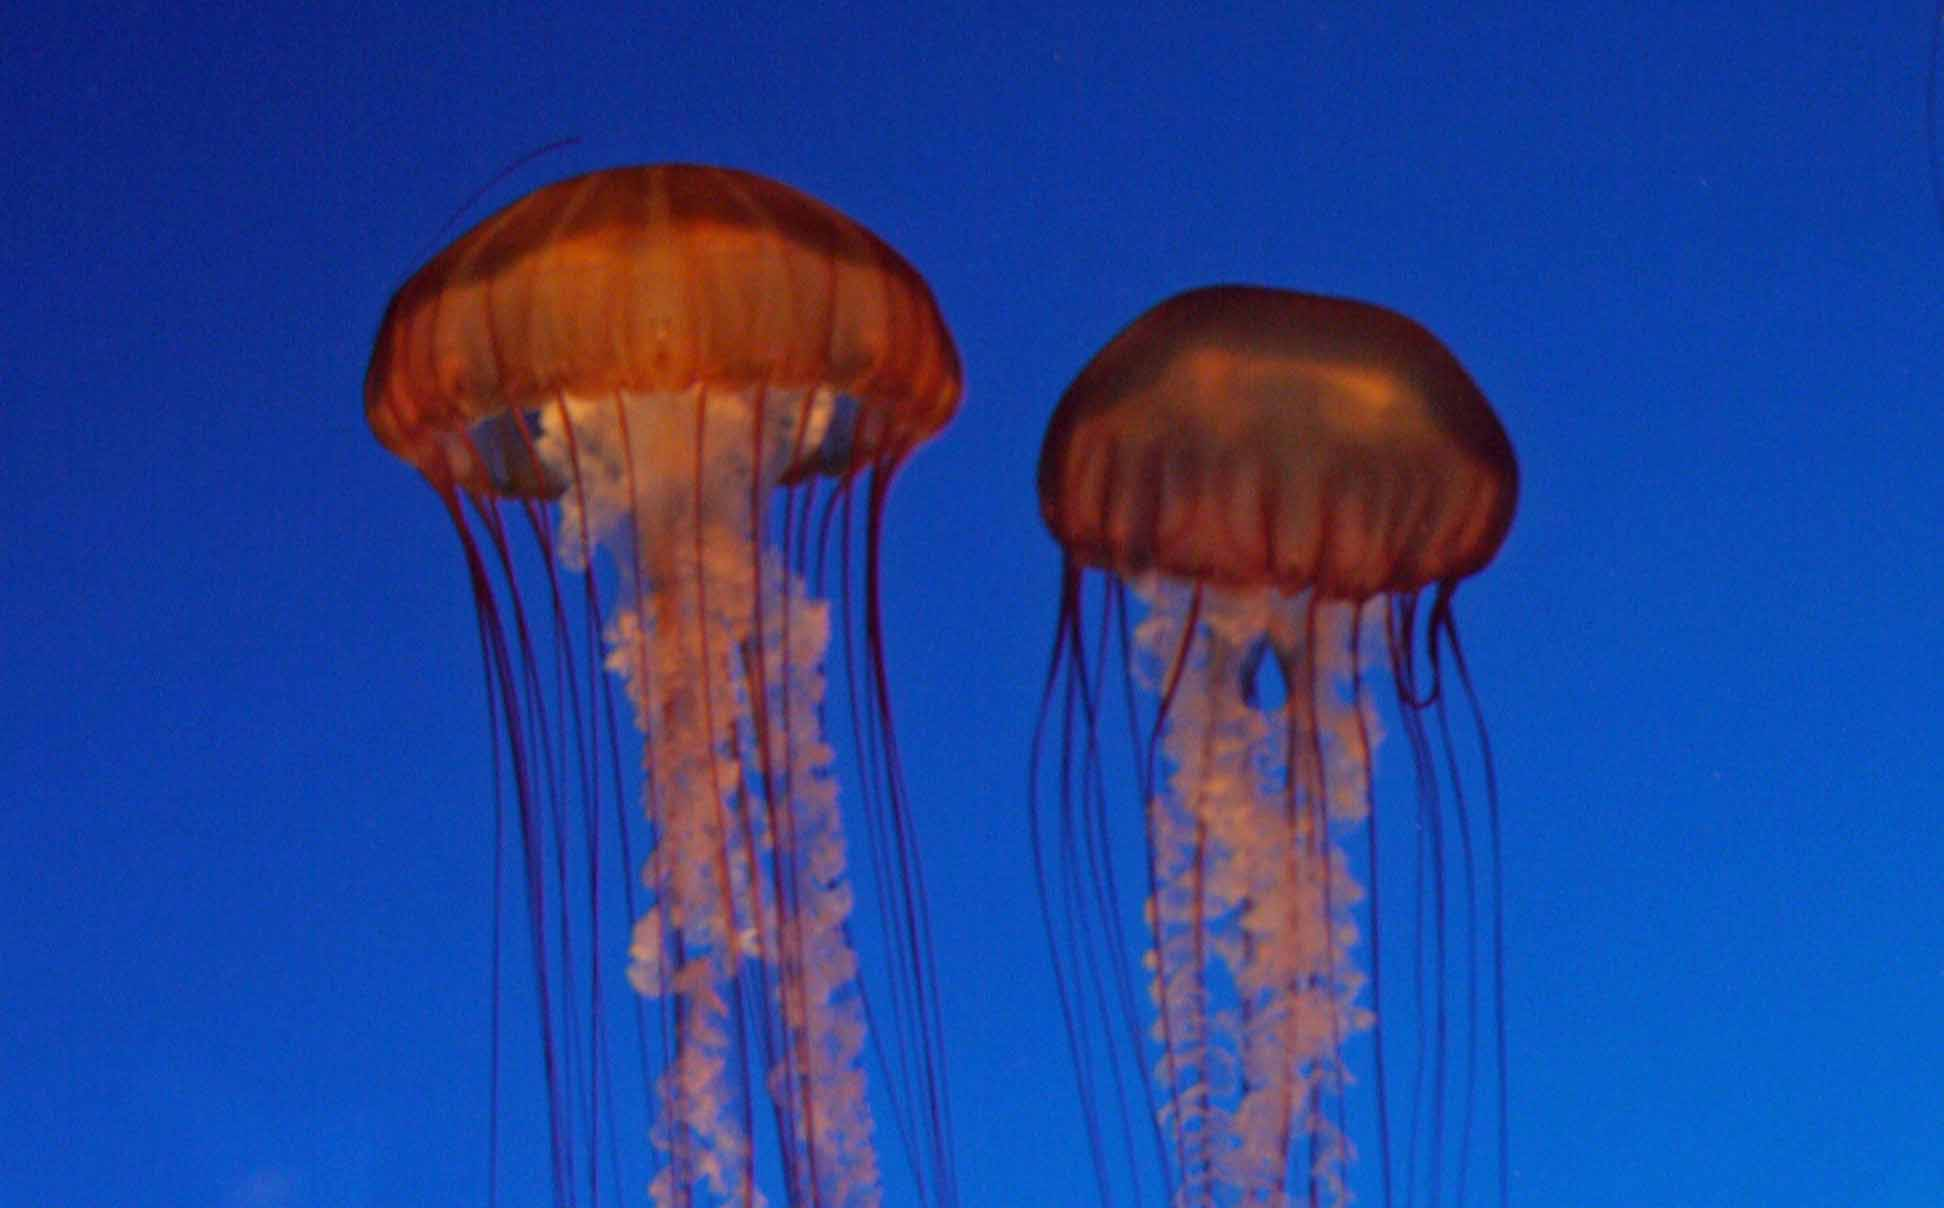 jellyfish may become the cockroaches of the sea due to pollution